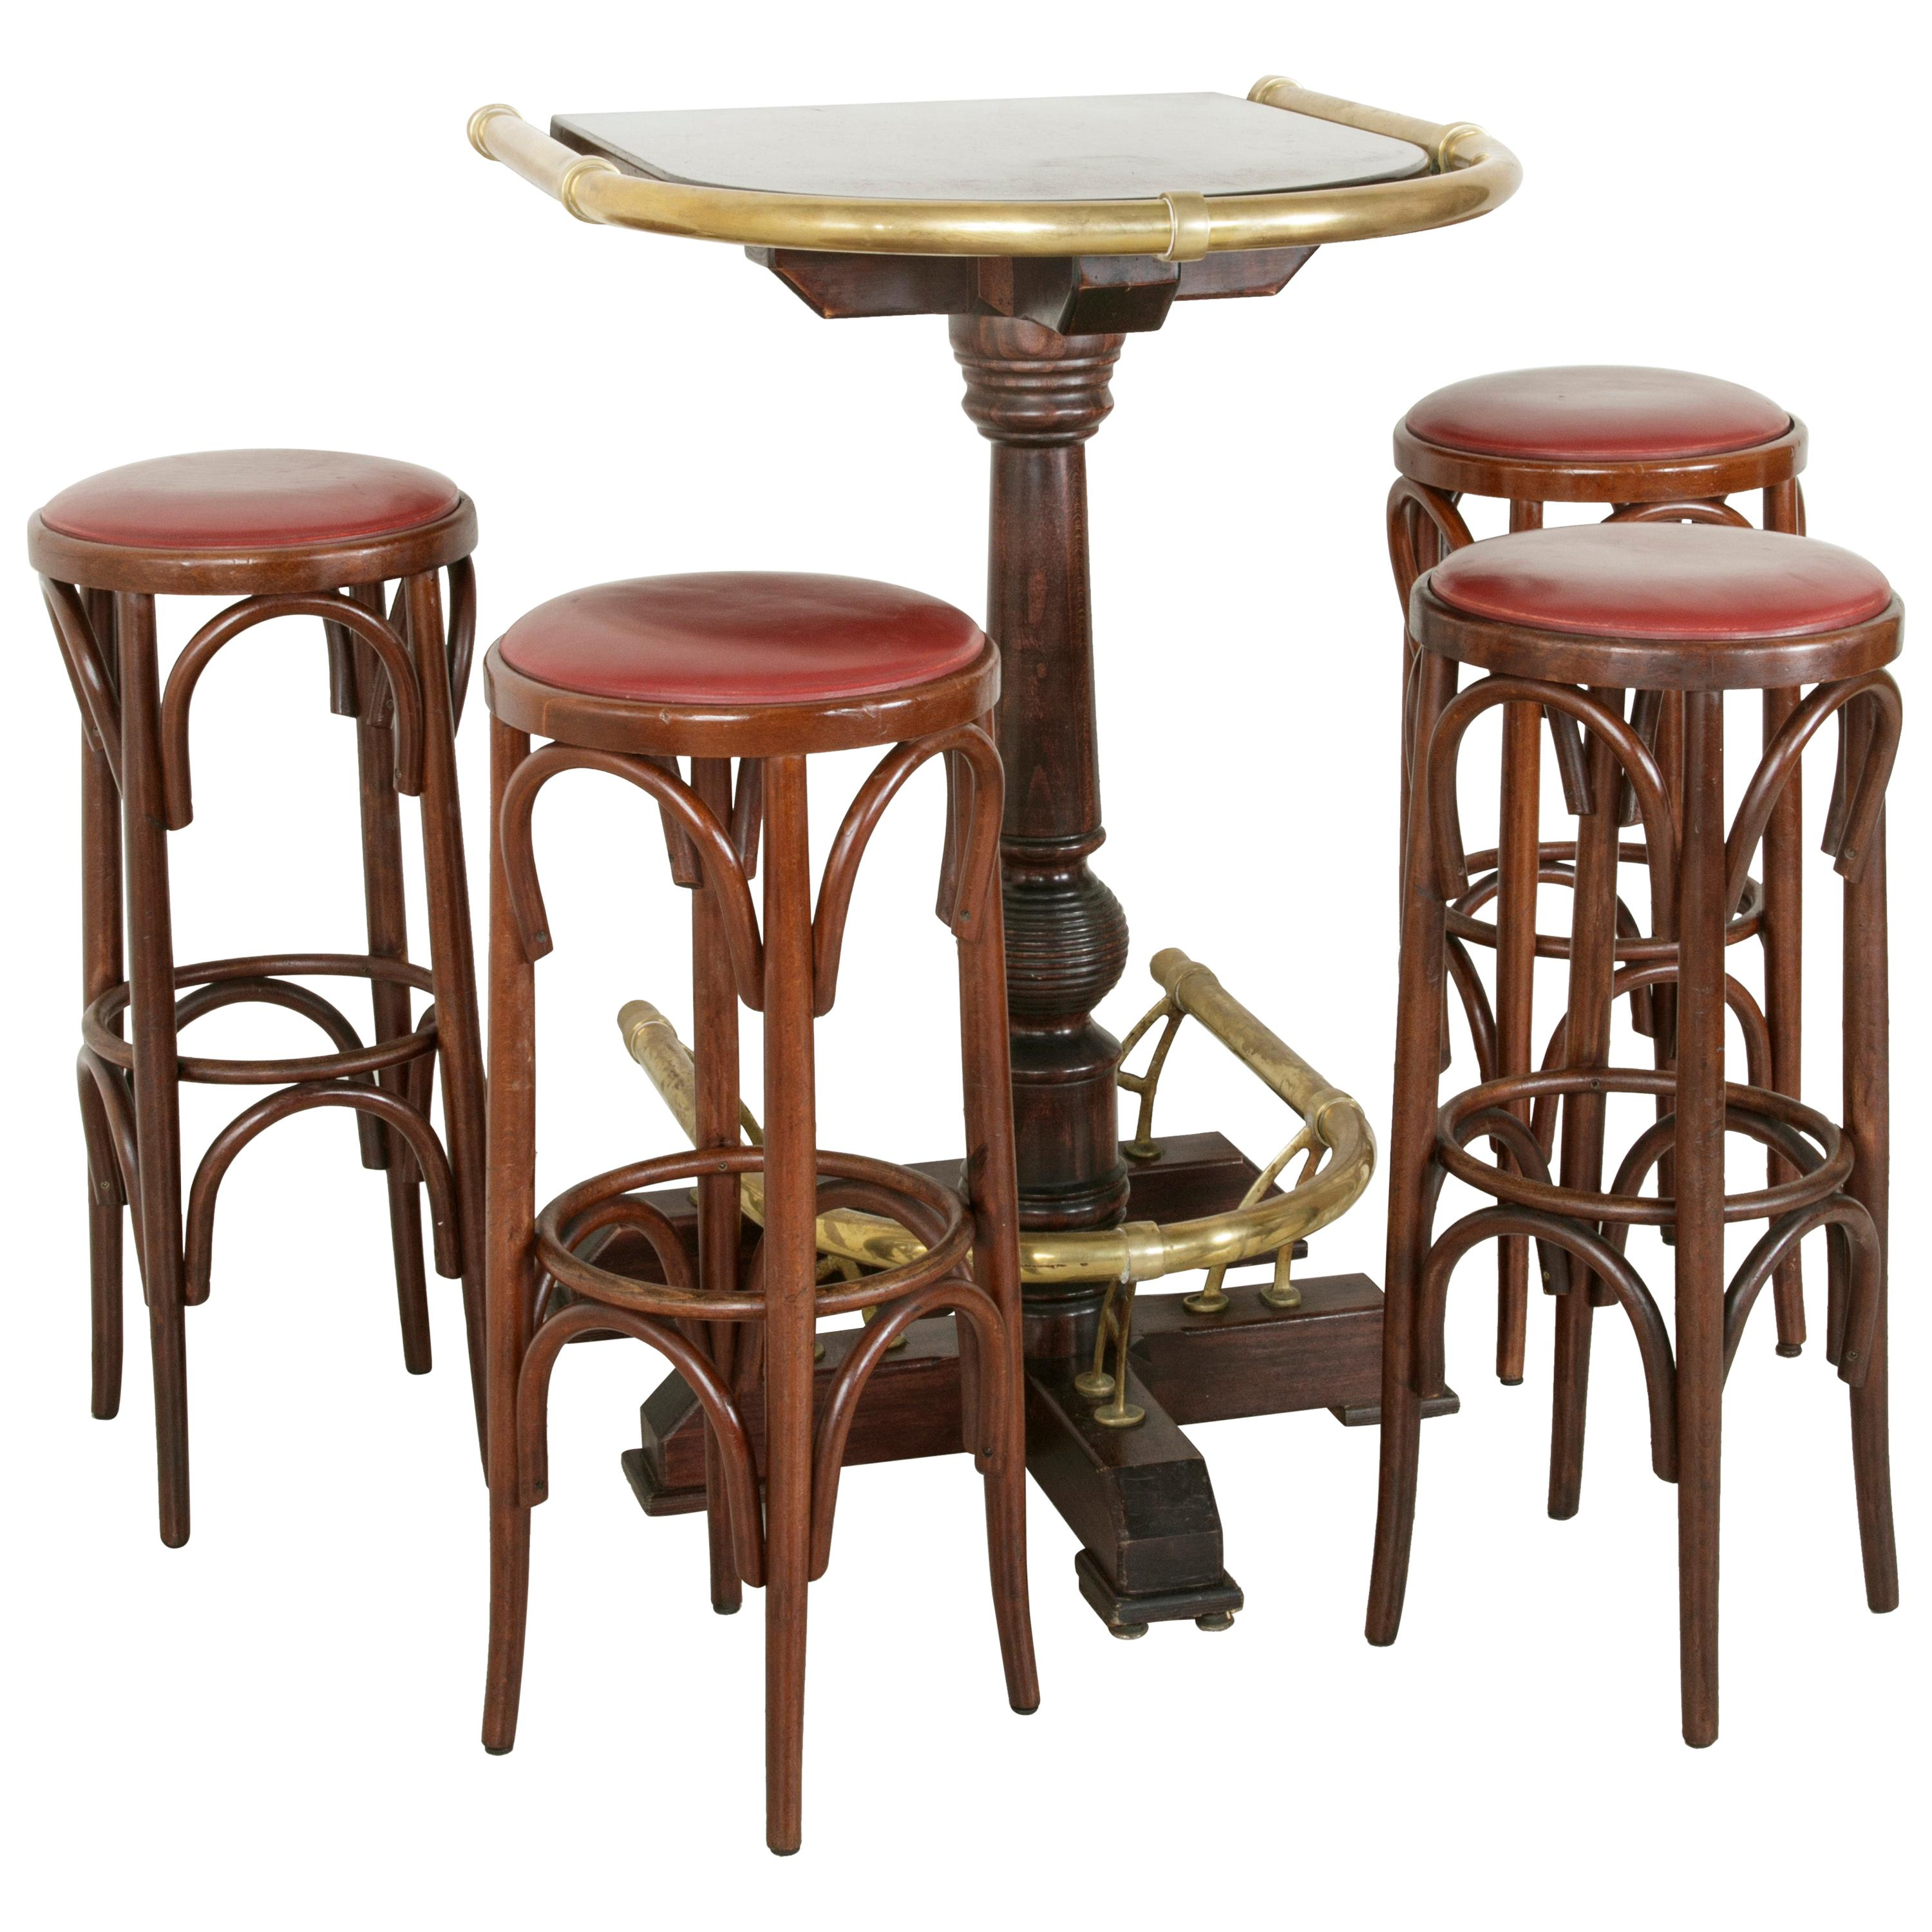 Kitchen Bar Stools On Sale Antique And Vintage Stools 7 317 For Sale At 1stdibs